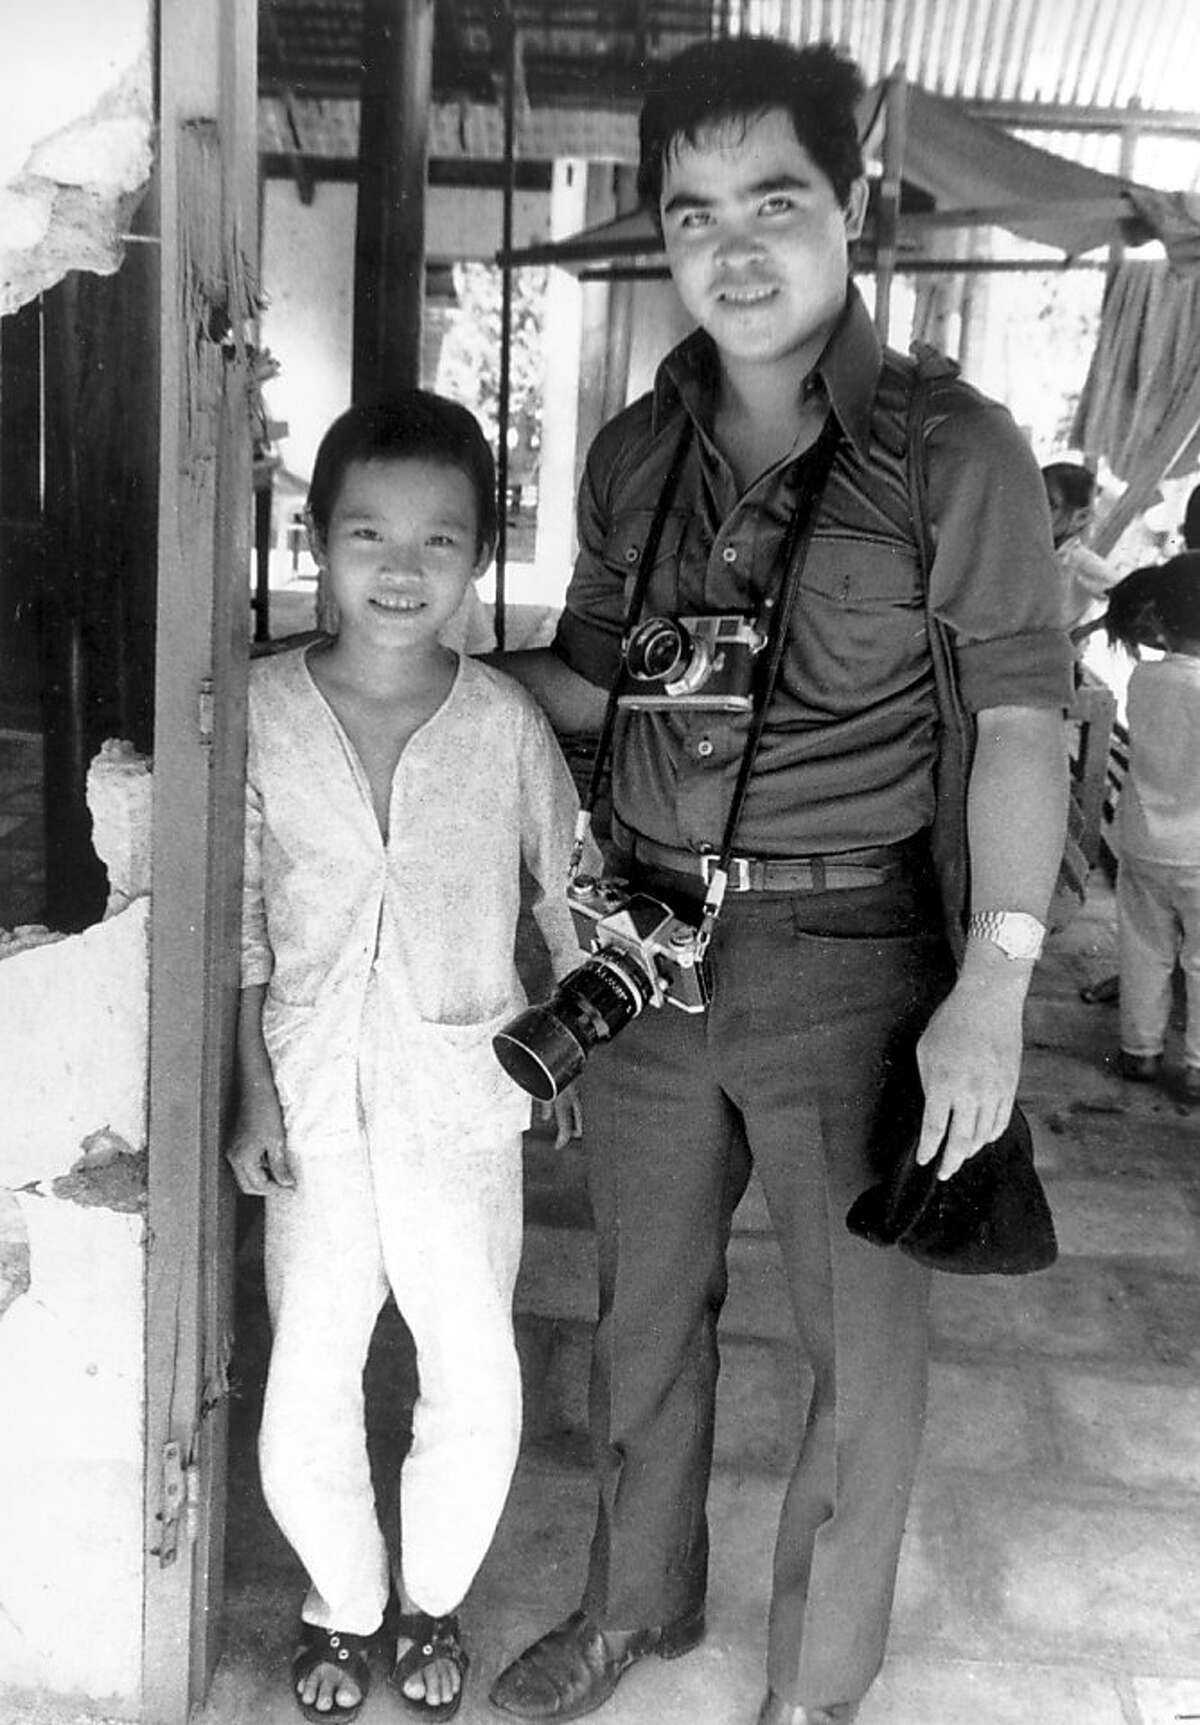 FILE - In this 1973 file photo, Phan Thi Kim Phuc, left, is visited by Associated Press photographer Nick Ut at her home in Trang Bang, Vietnam. As a nine-year-old, Kim Phuc was the subject of a Pulitzer Prize-winning photo by Ut as she fled in pain from a misdirected napalm attack against her village by South Vietnamese planes in 1972. After taking the photograph, Ut came to the girl's aid and transported her to a hospital. (AP Photo)